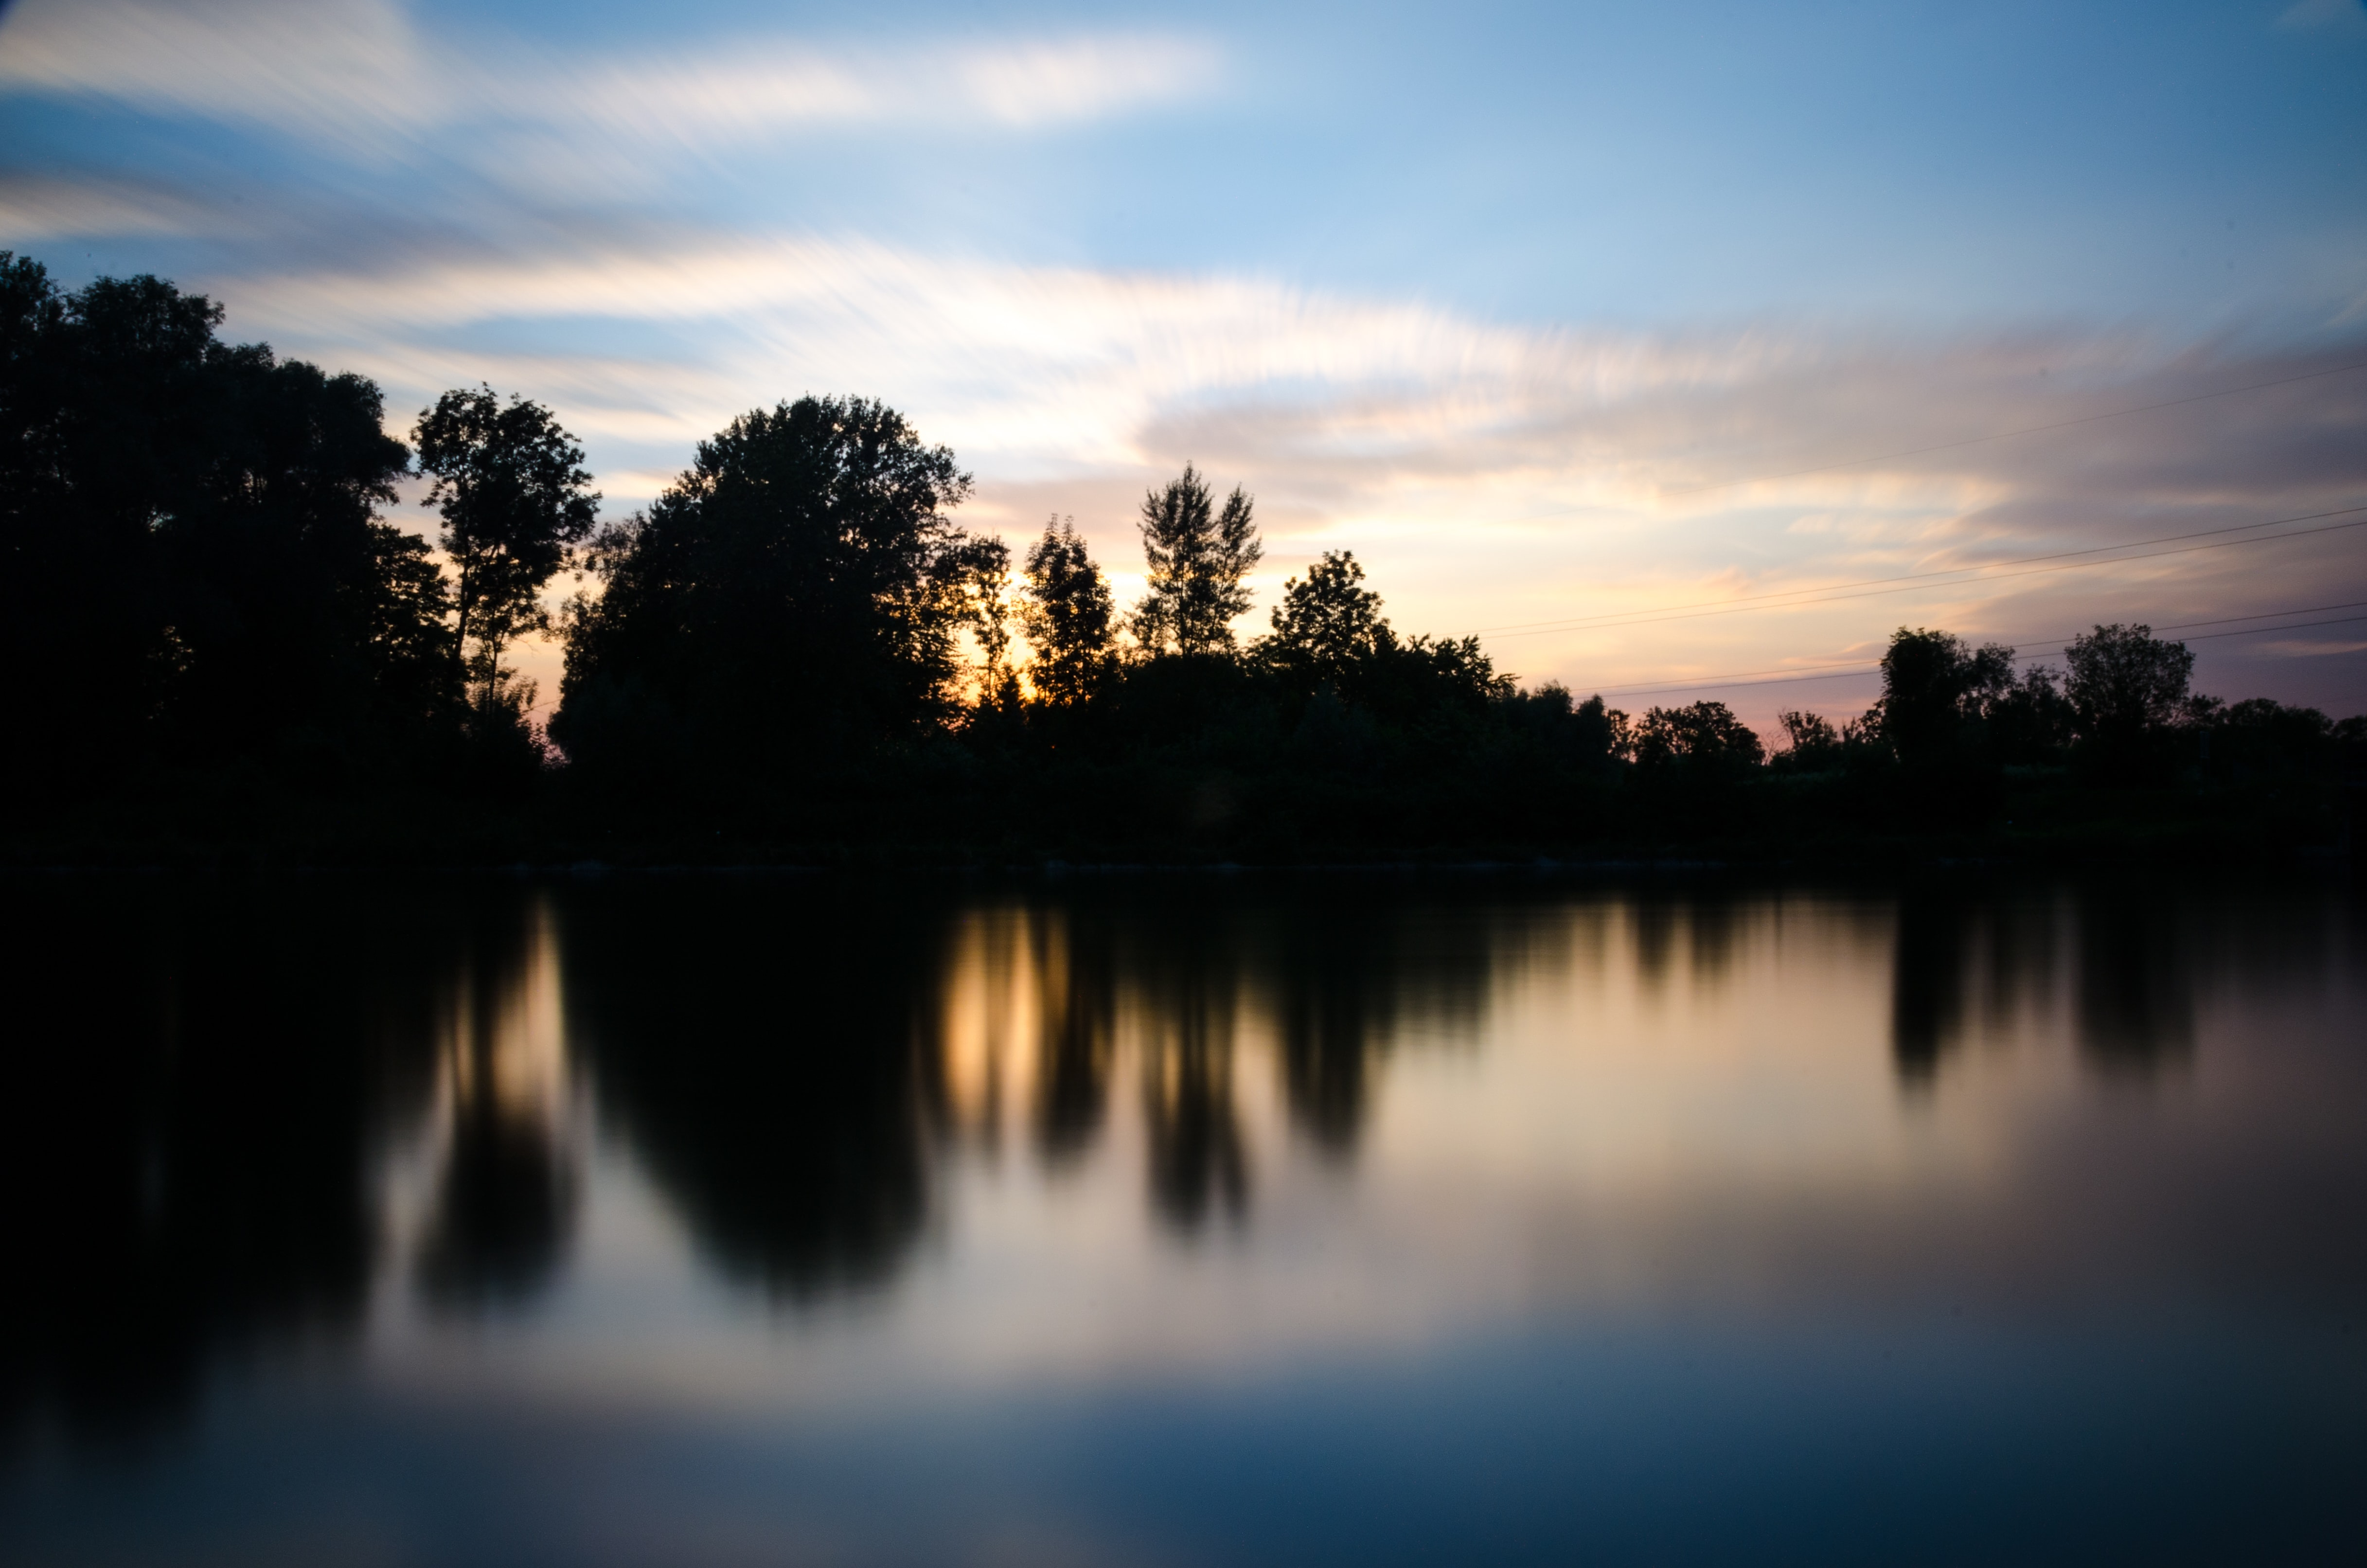 Silhouettes of trees reflect in a still lake at sunset